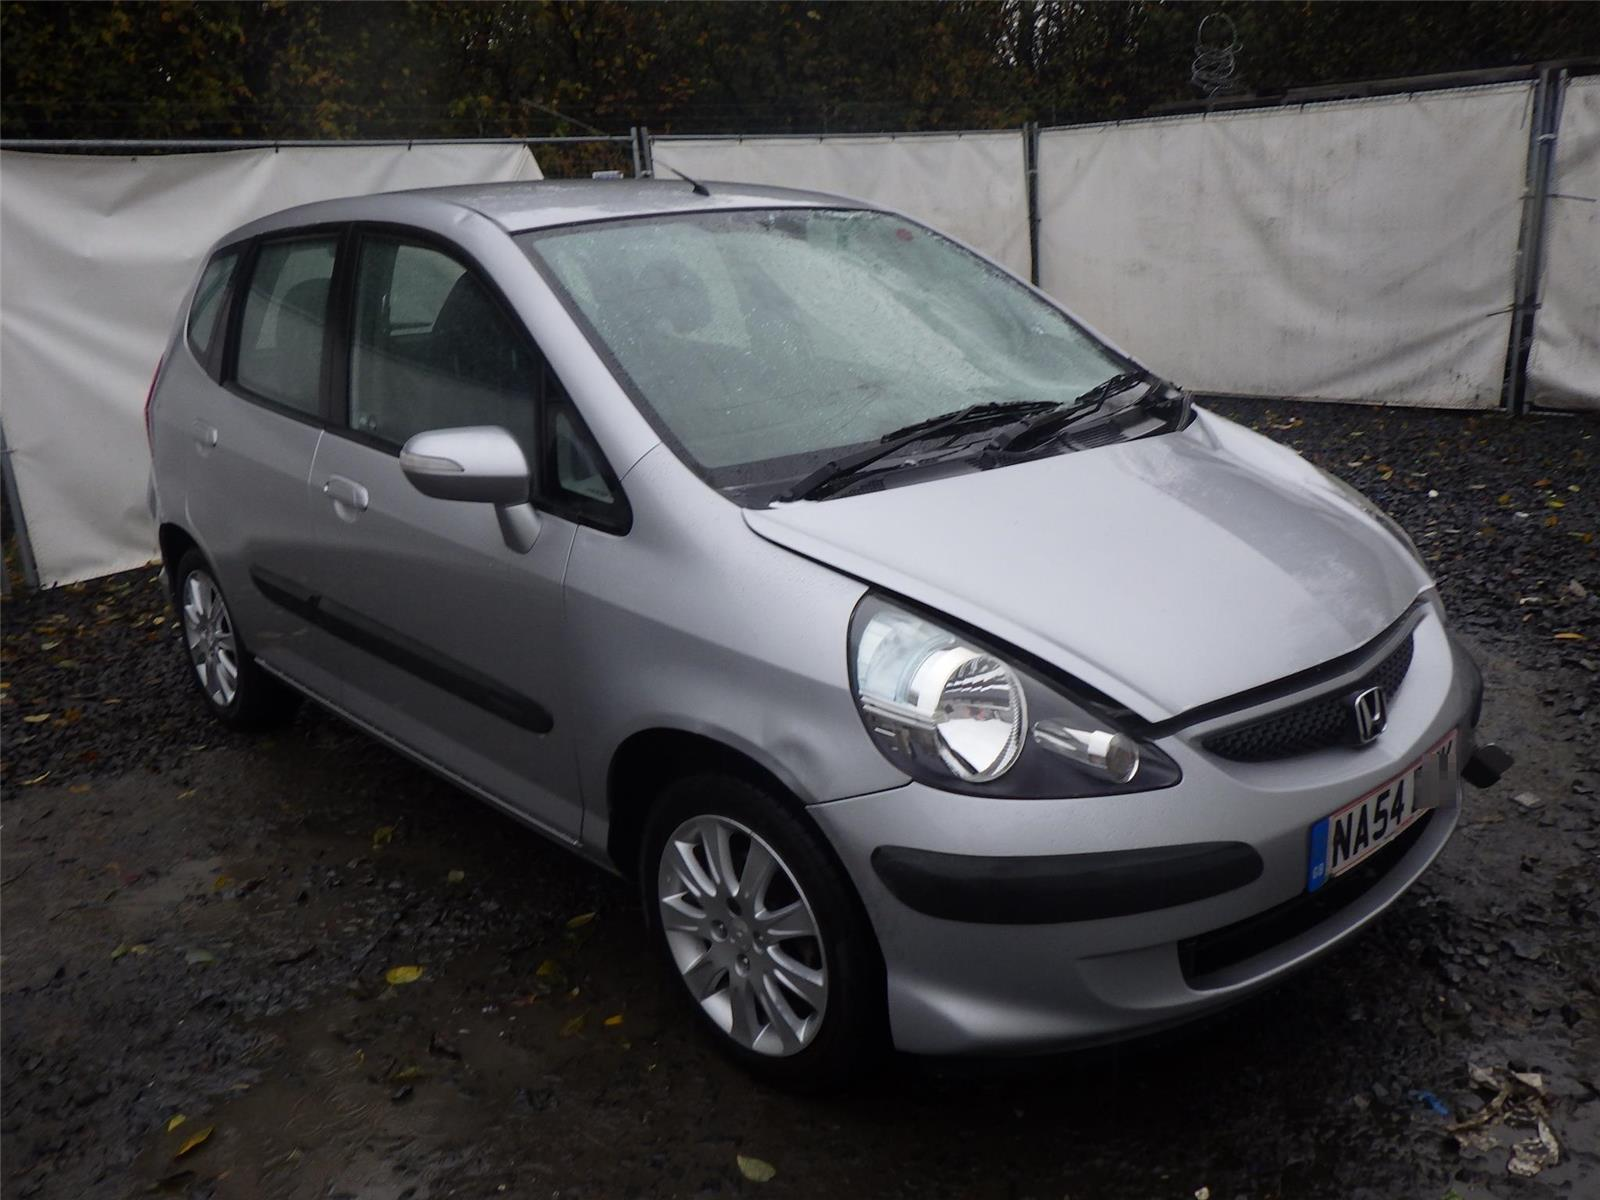 Honda Jazz 2002 To 2004 5 Door Hatchback